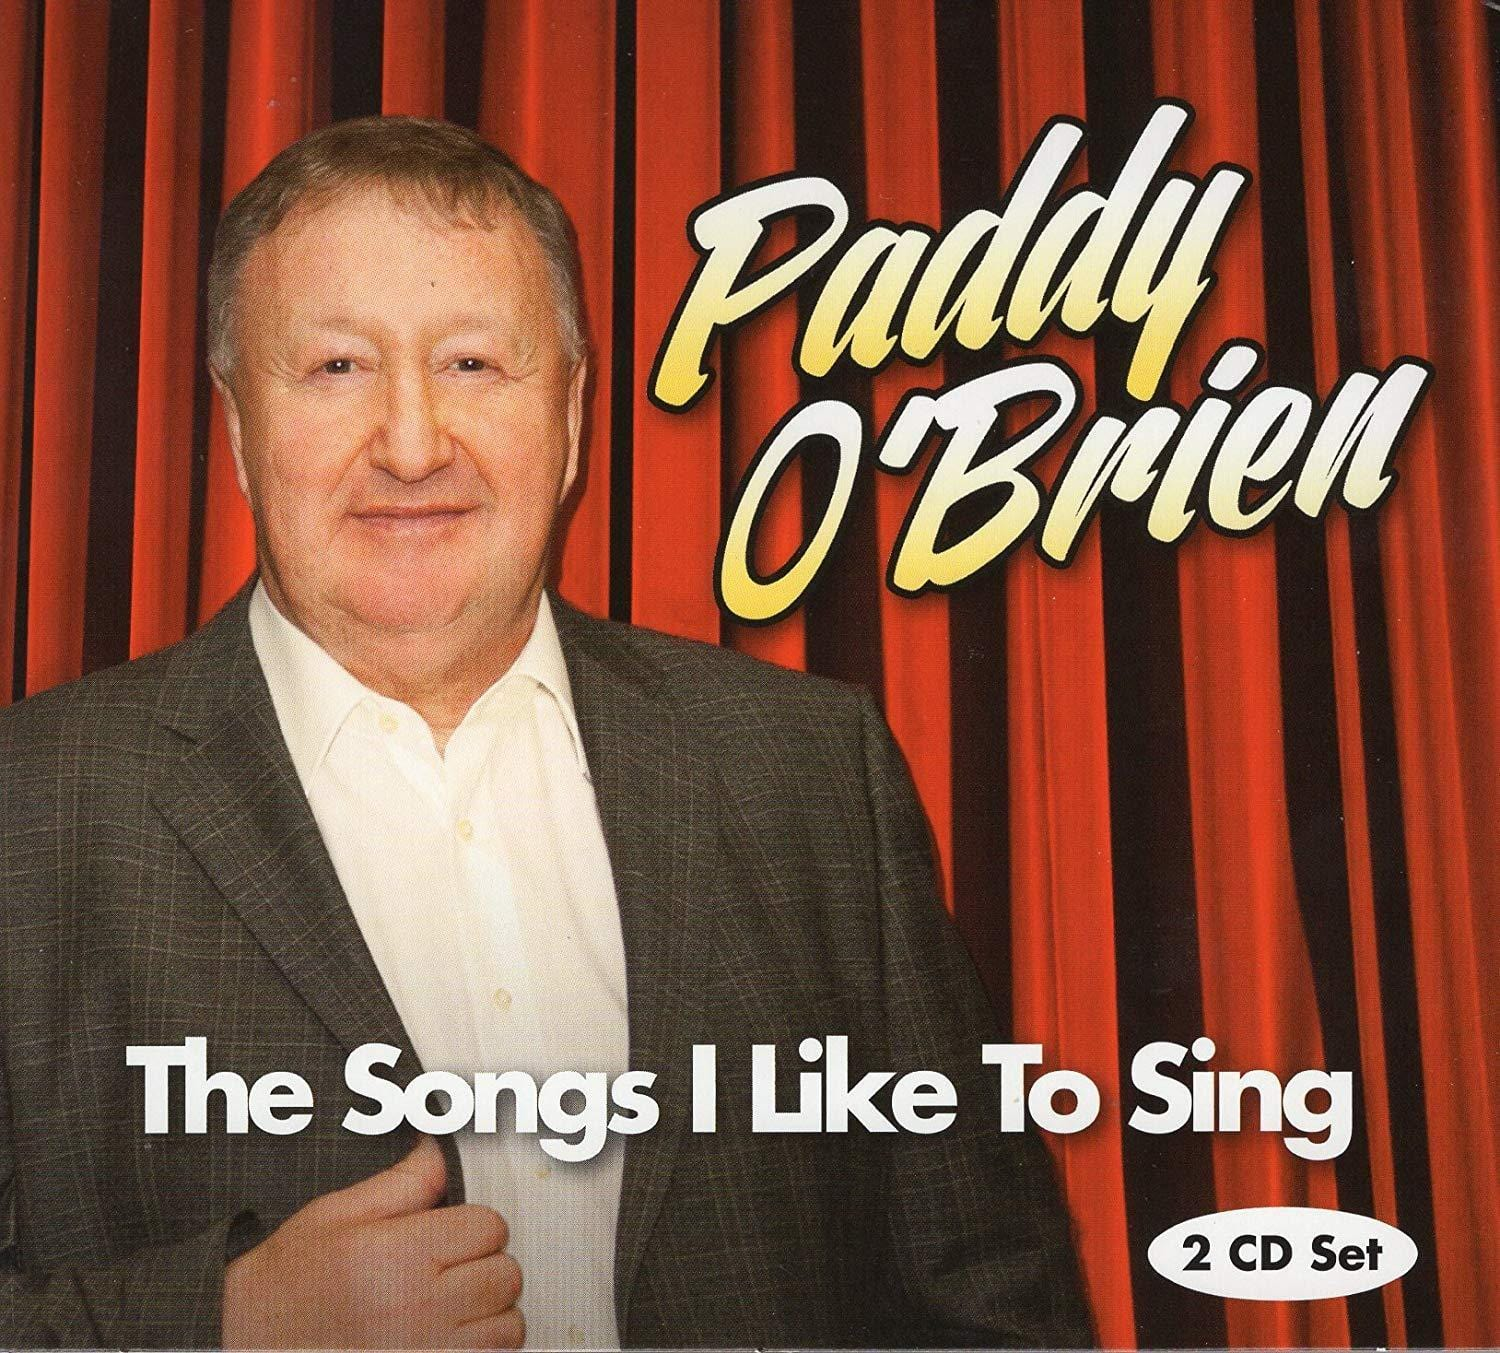 Paddy O Brien The Songs I Like To Sing [CD]